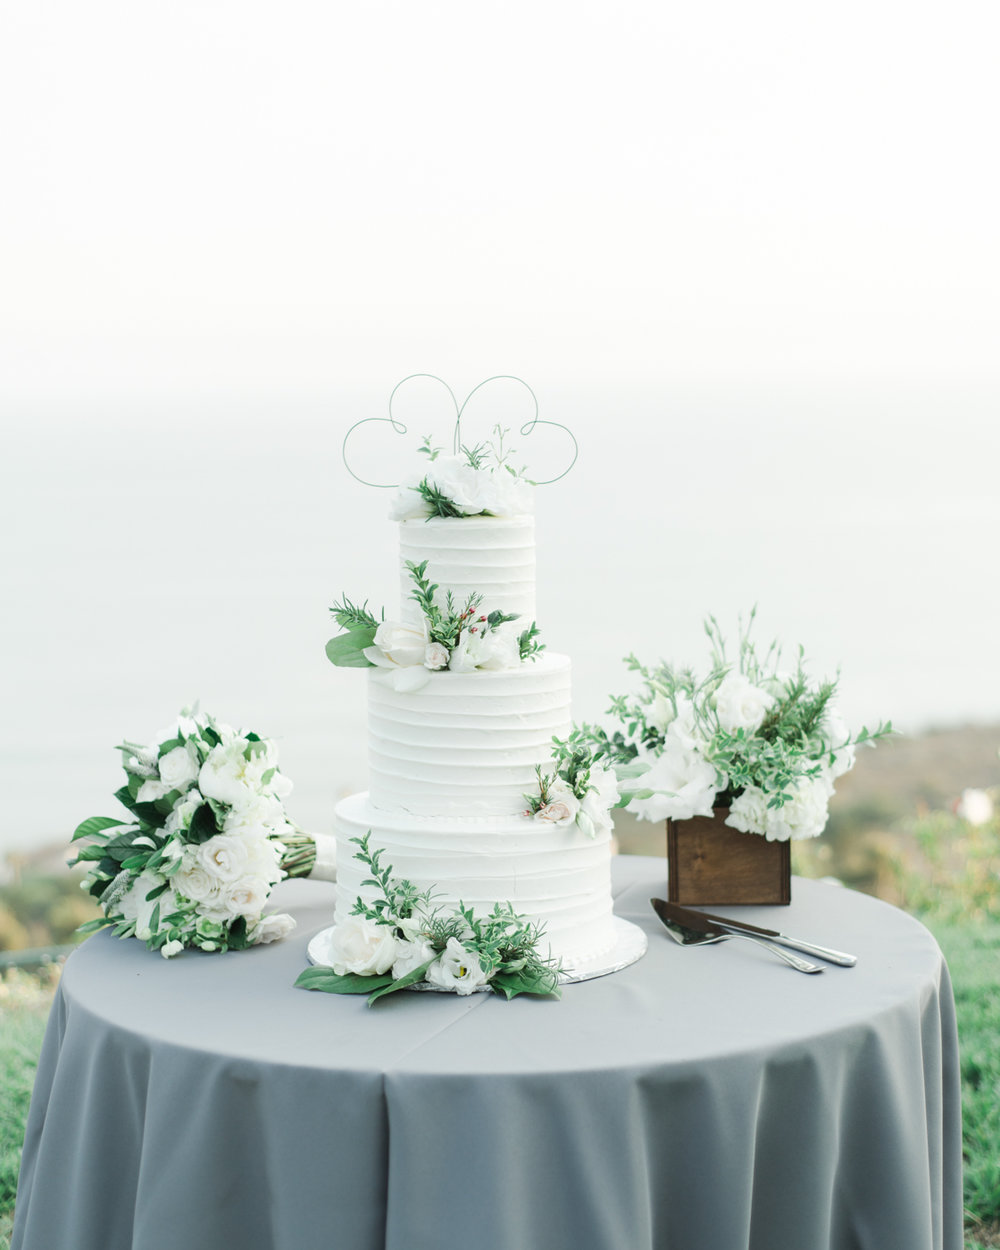 AKP_S&F_Malibu_Wedding_Fine_Art_Photography_Los_Angeles-48_cake.jpg